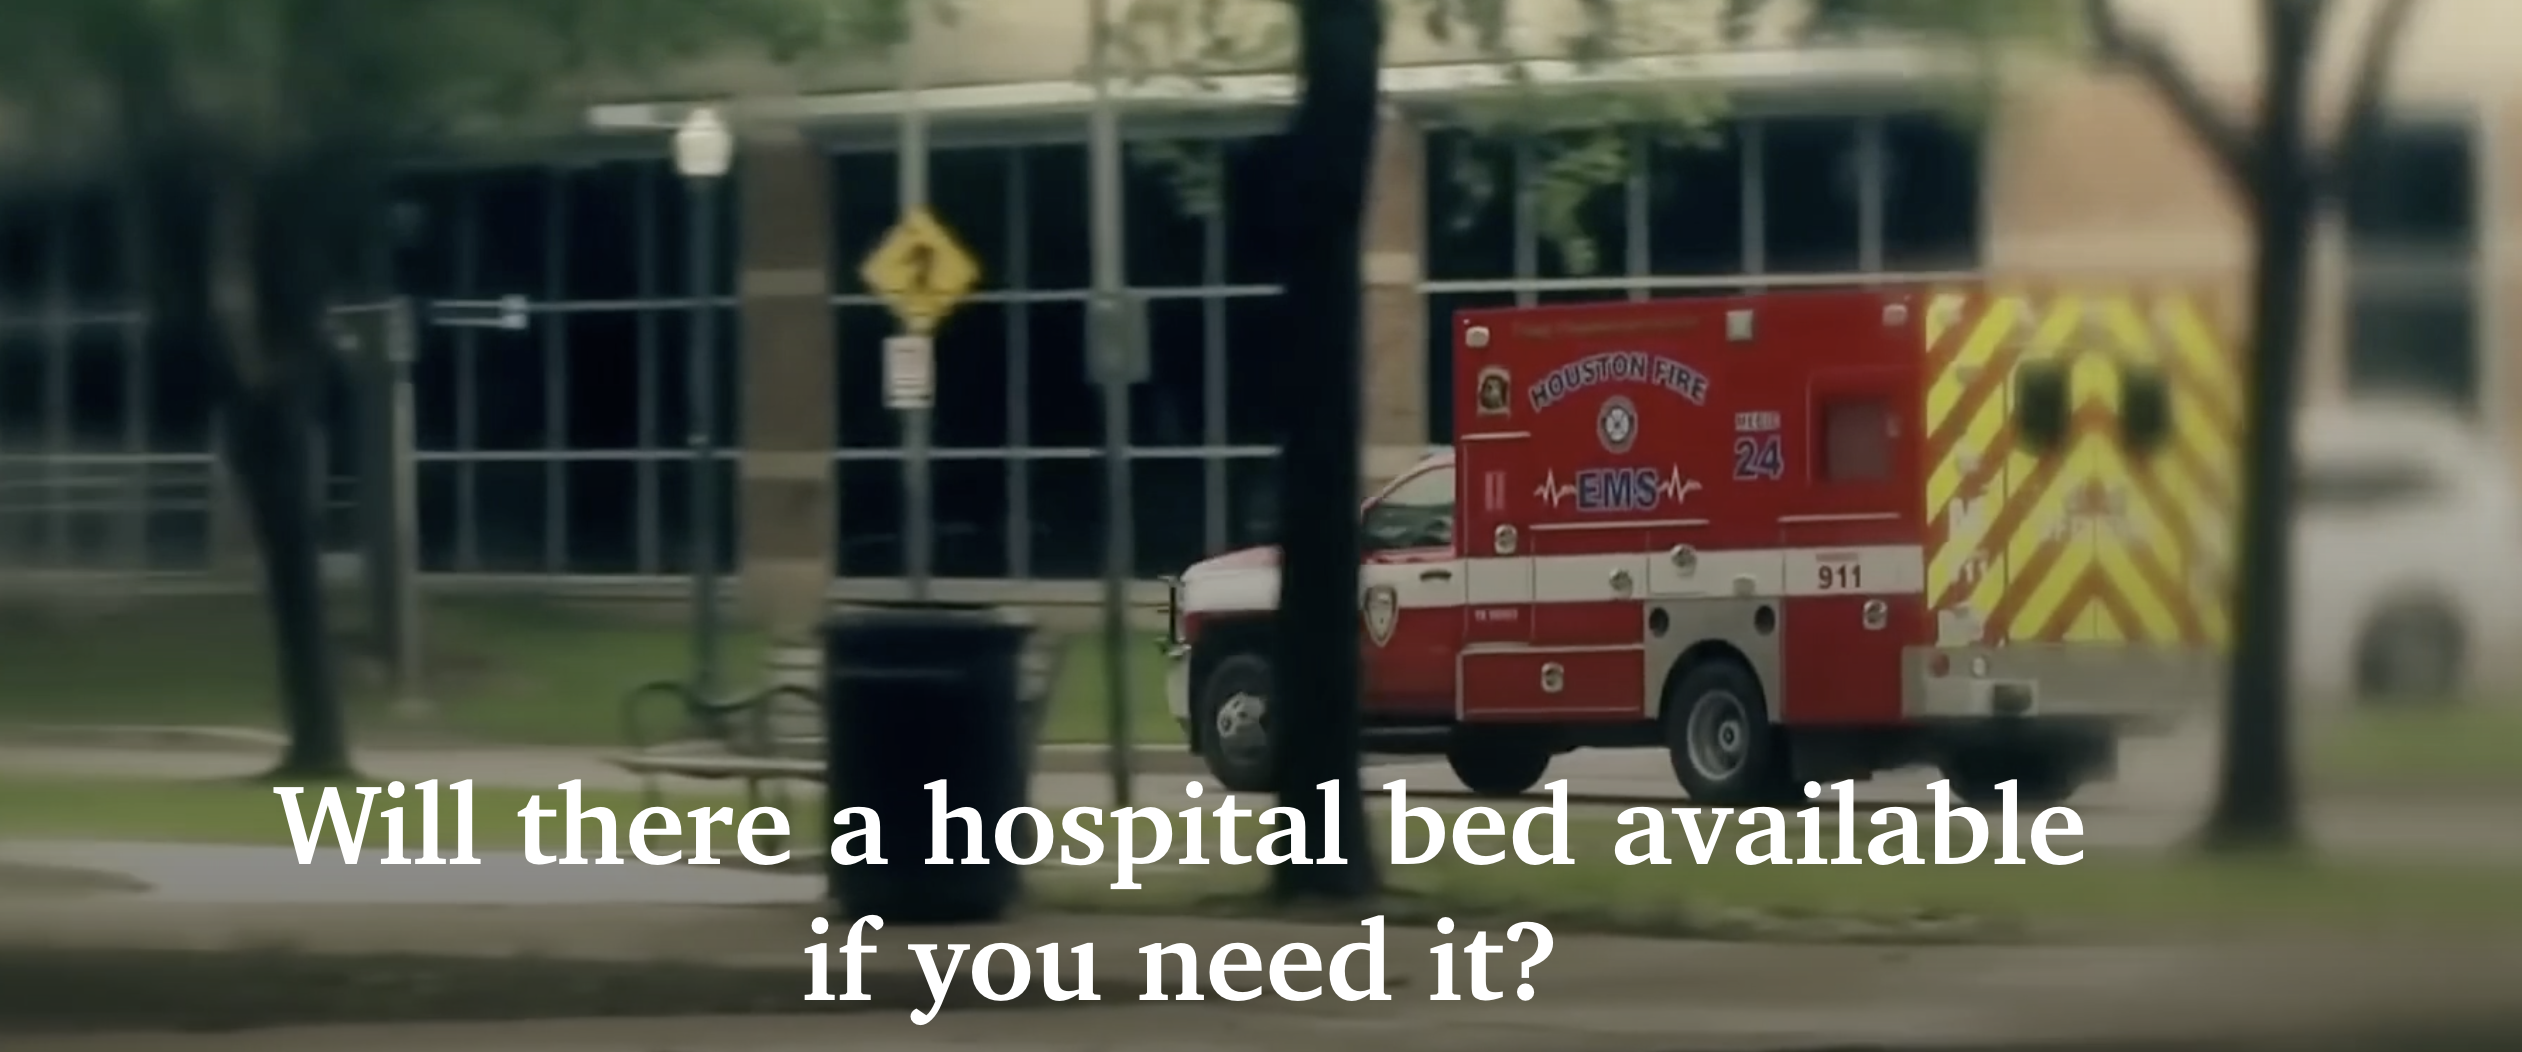 Will there be a hospital bed if you need it due to hospitals overcrowded with unvaccinated COVID patients